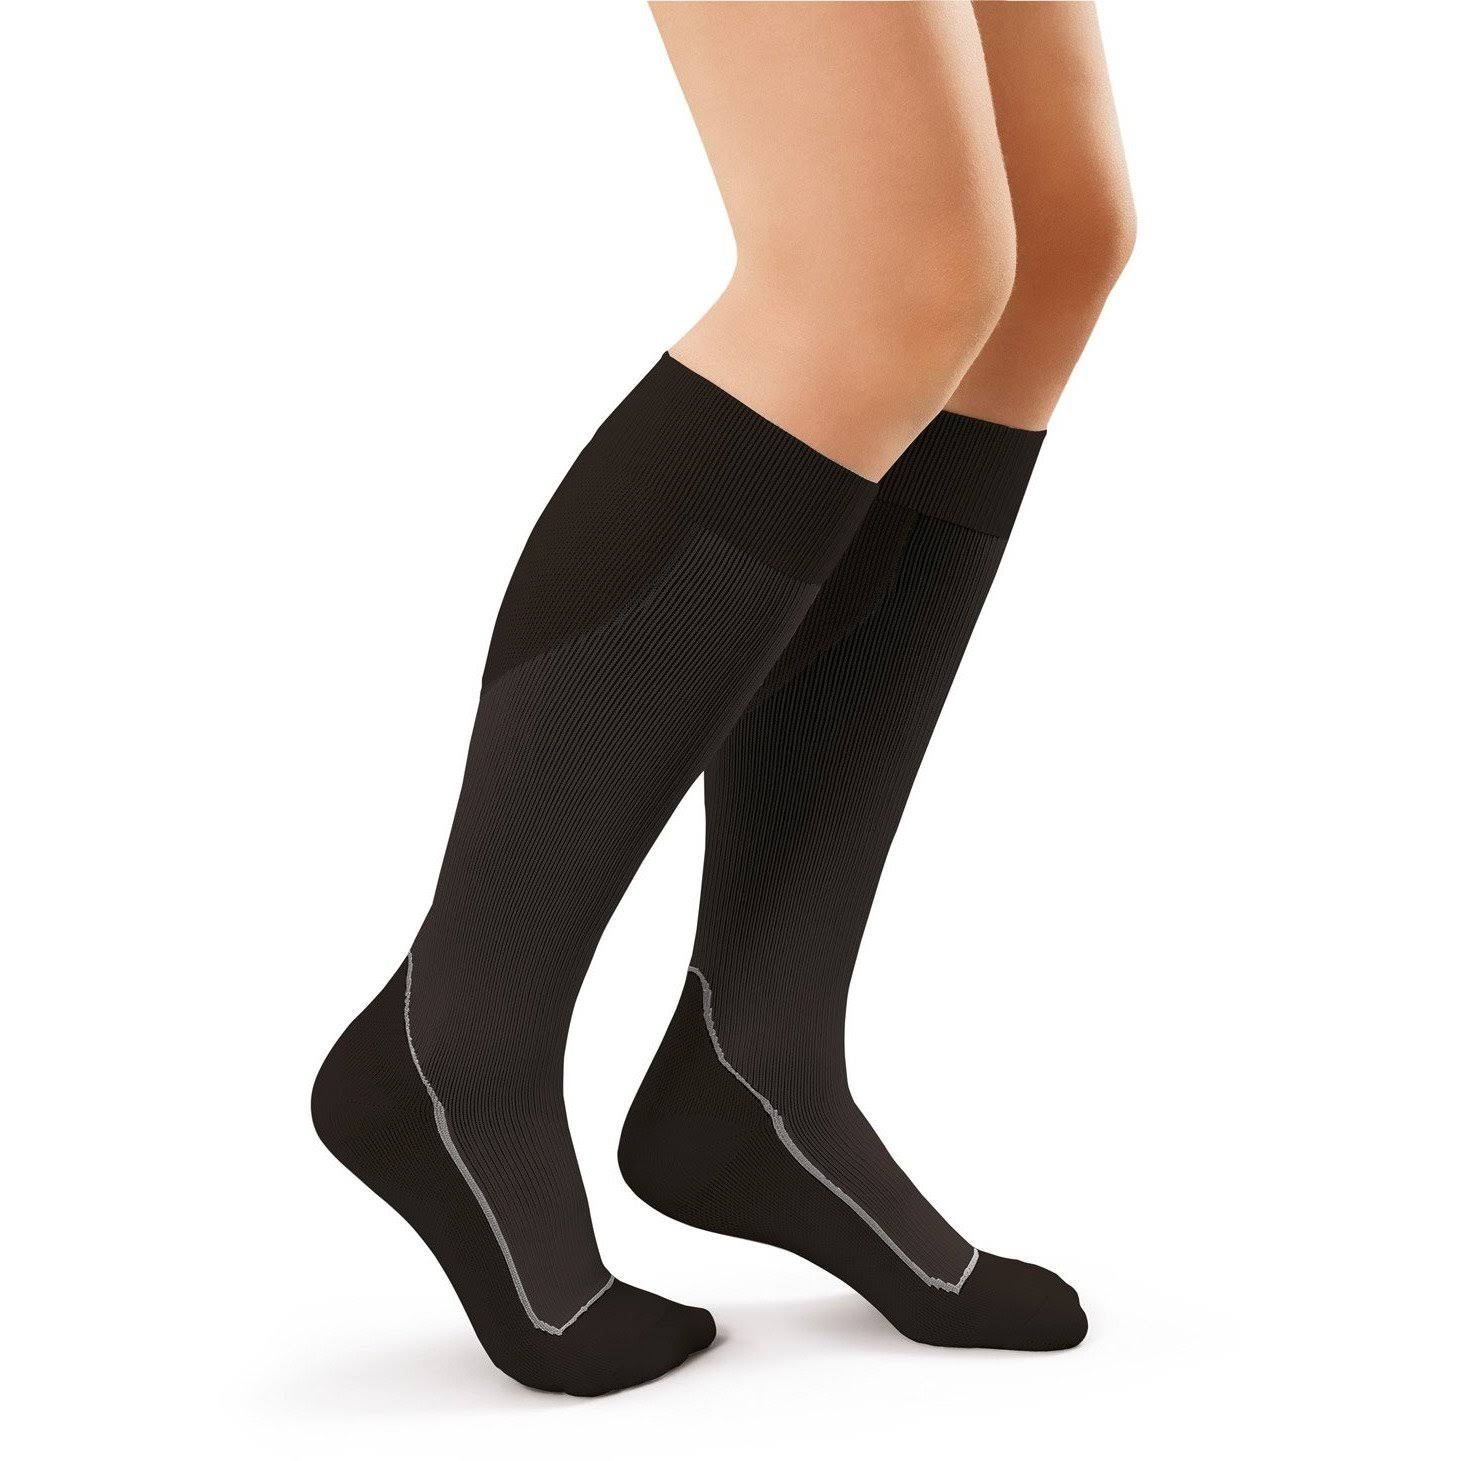 Jobst Sport 20-30 mmHg Knee High Socks Small / Cool Black/Black